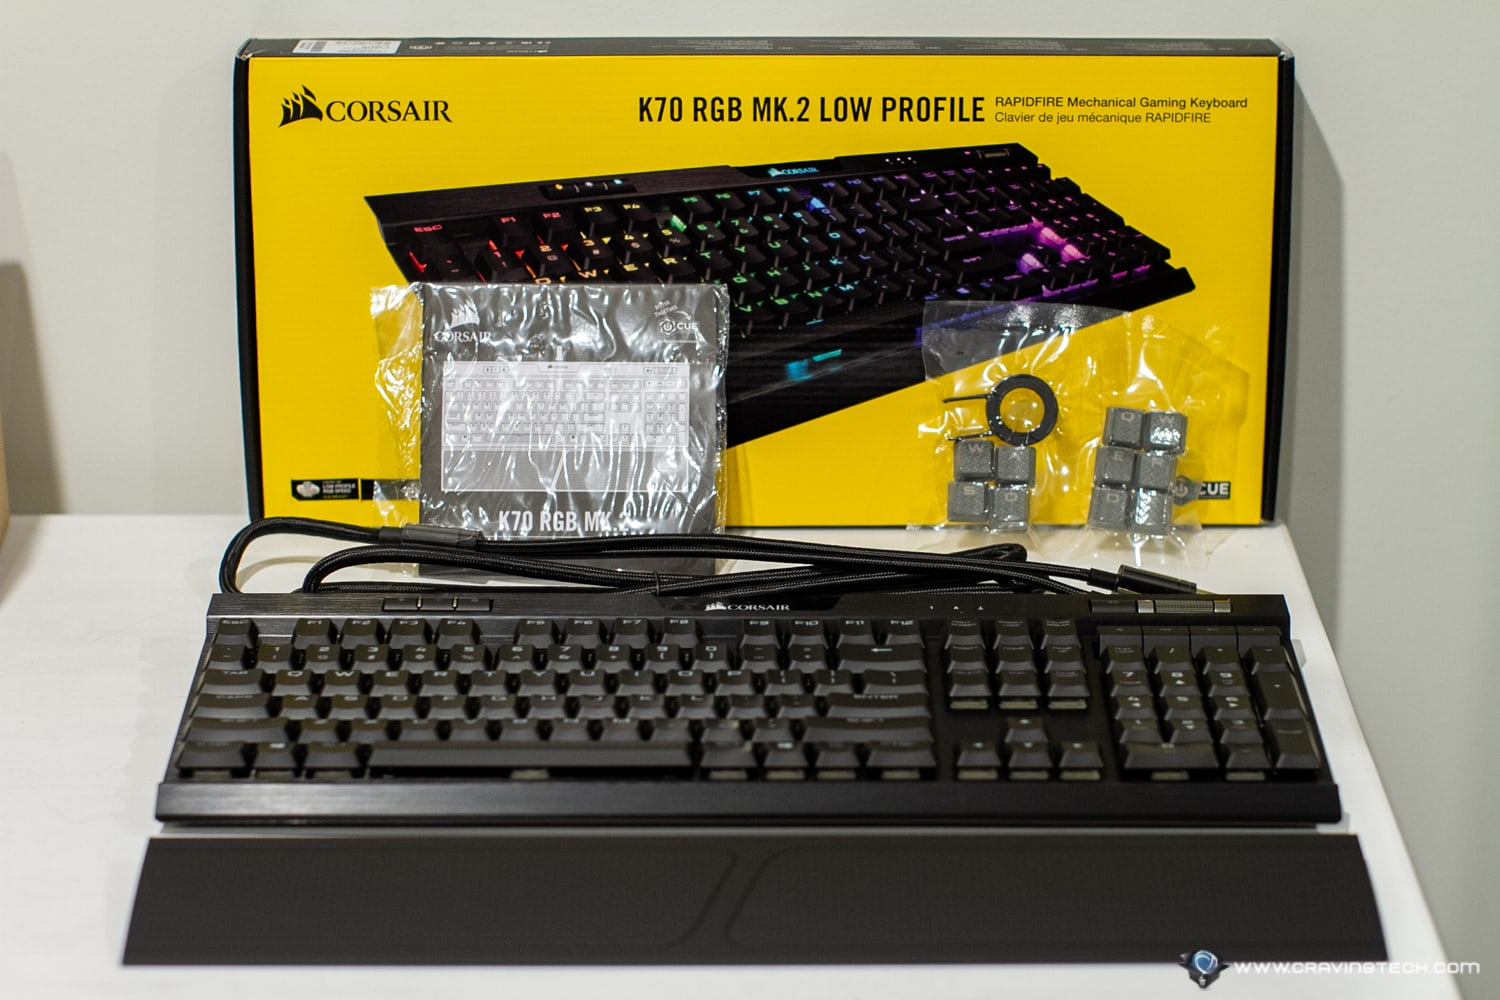 Corsair K70 RGB Mk2 Low Profile Gaming Keyboard Packaging Contents